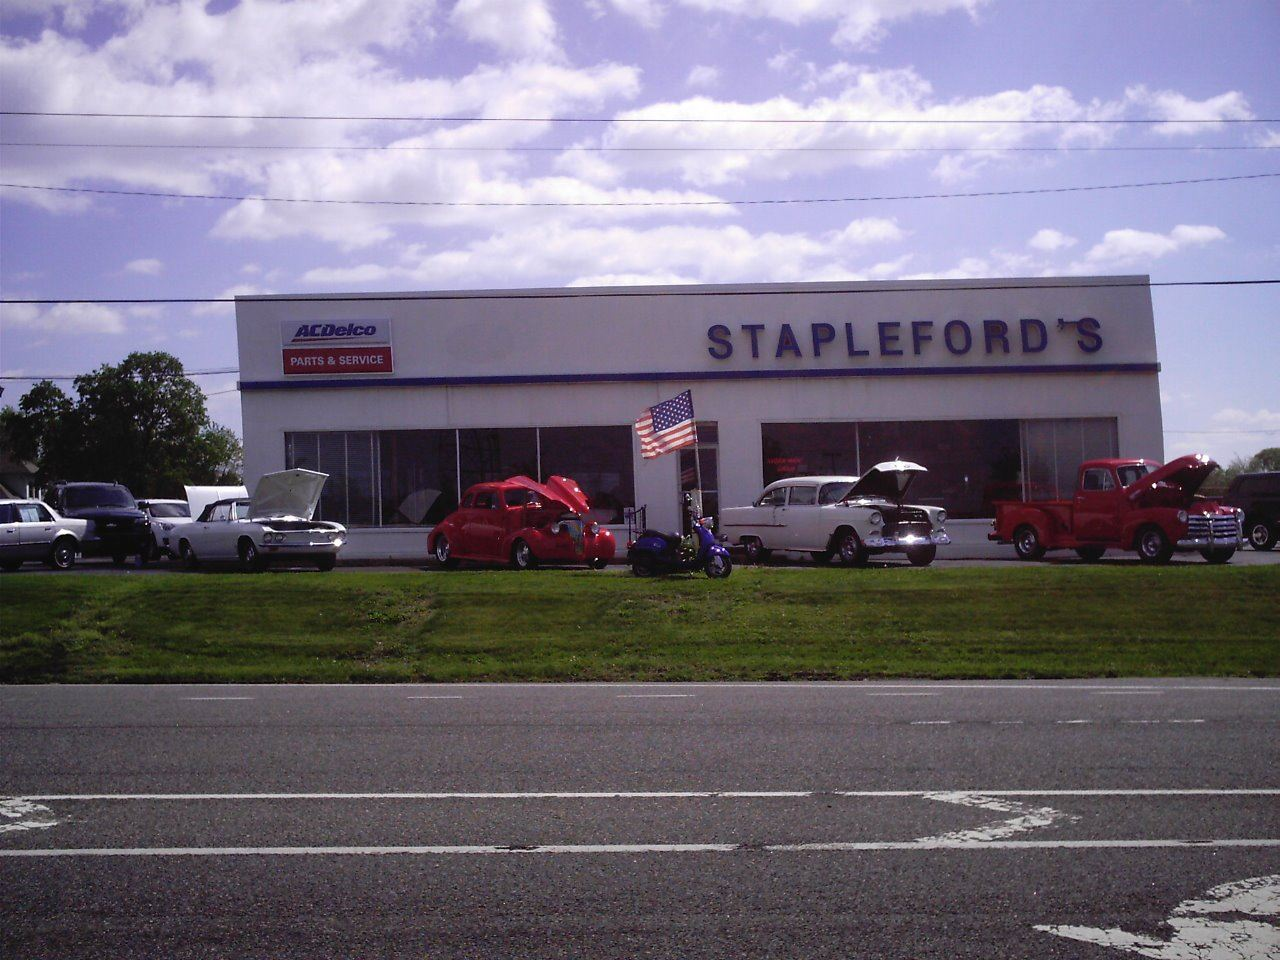 STAPLEFORD'S SALES & SERVICE